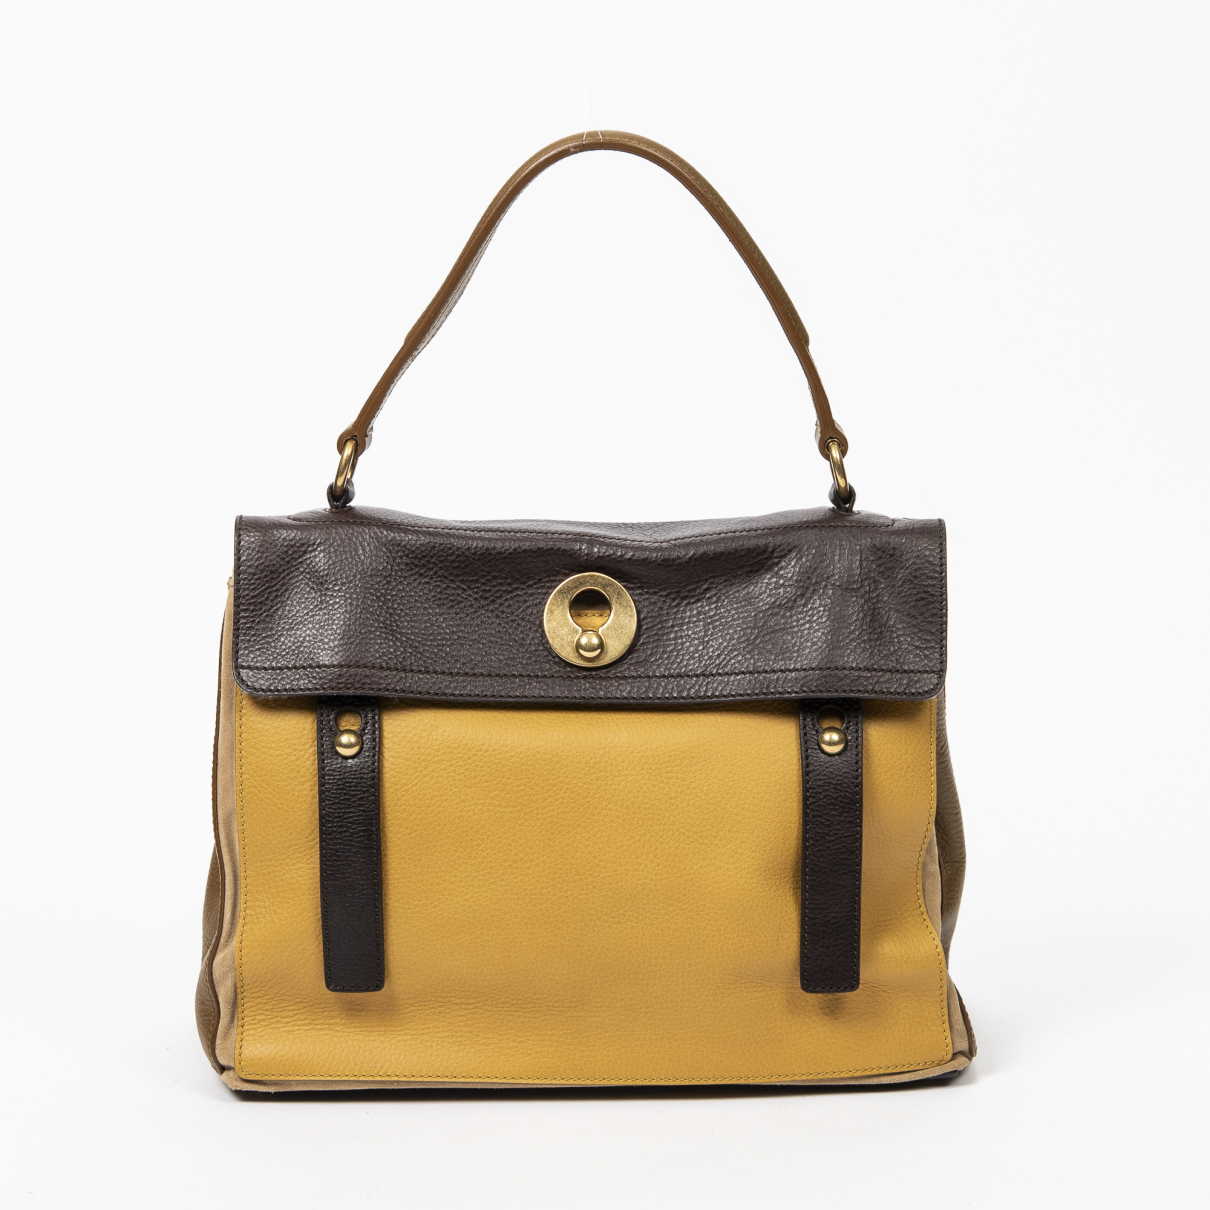 Yves Saint Laurent \N Handtasche in  Braun Leder